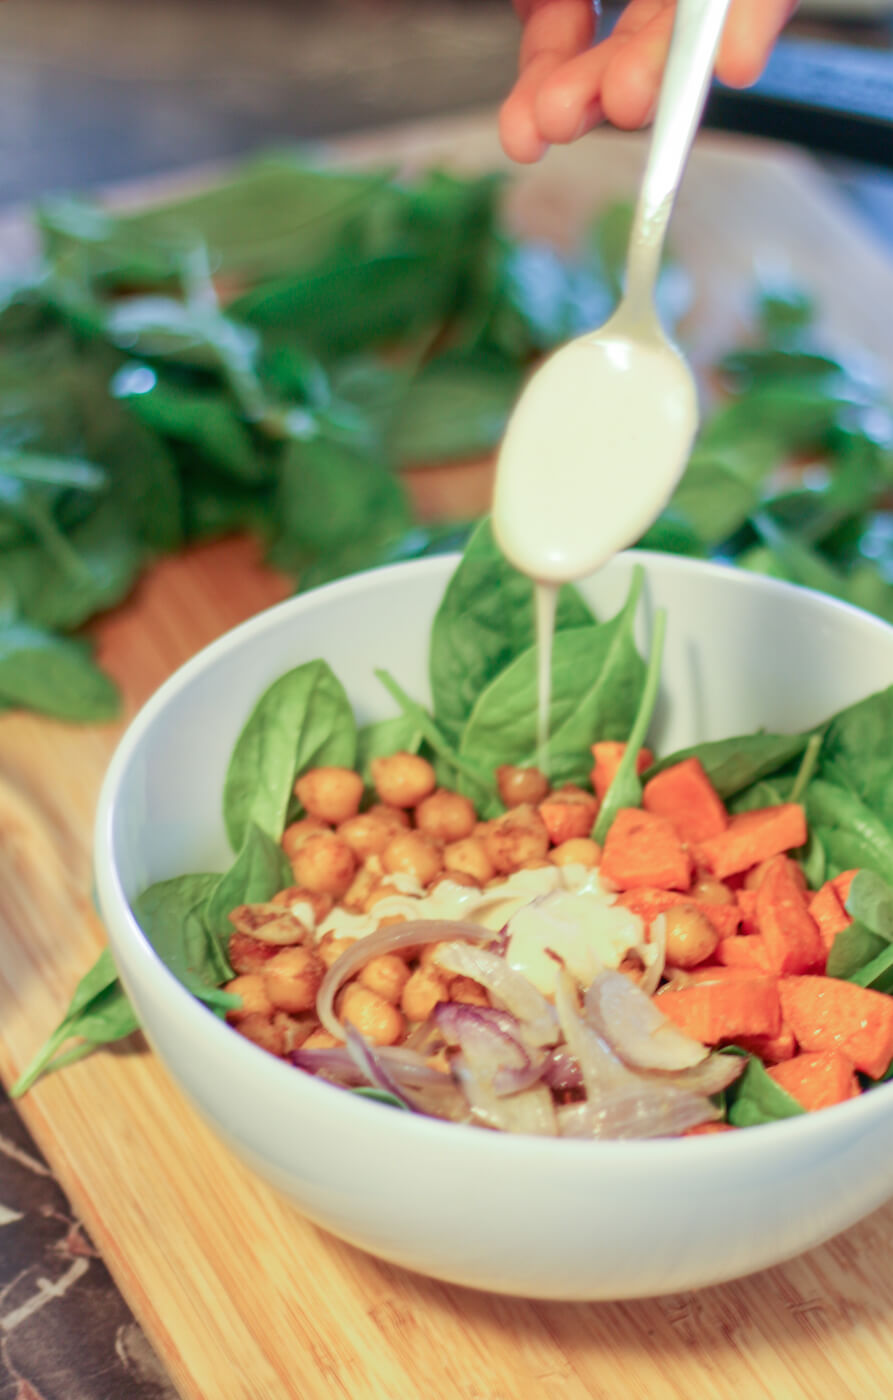 Spinach salad with roasted chickpea, sweet potato and onions